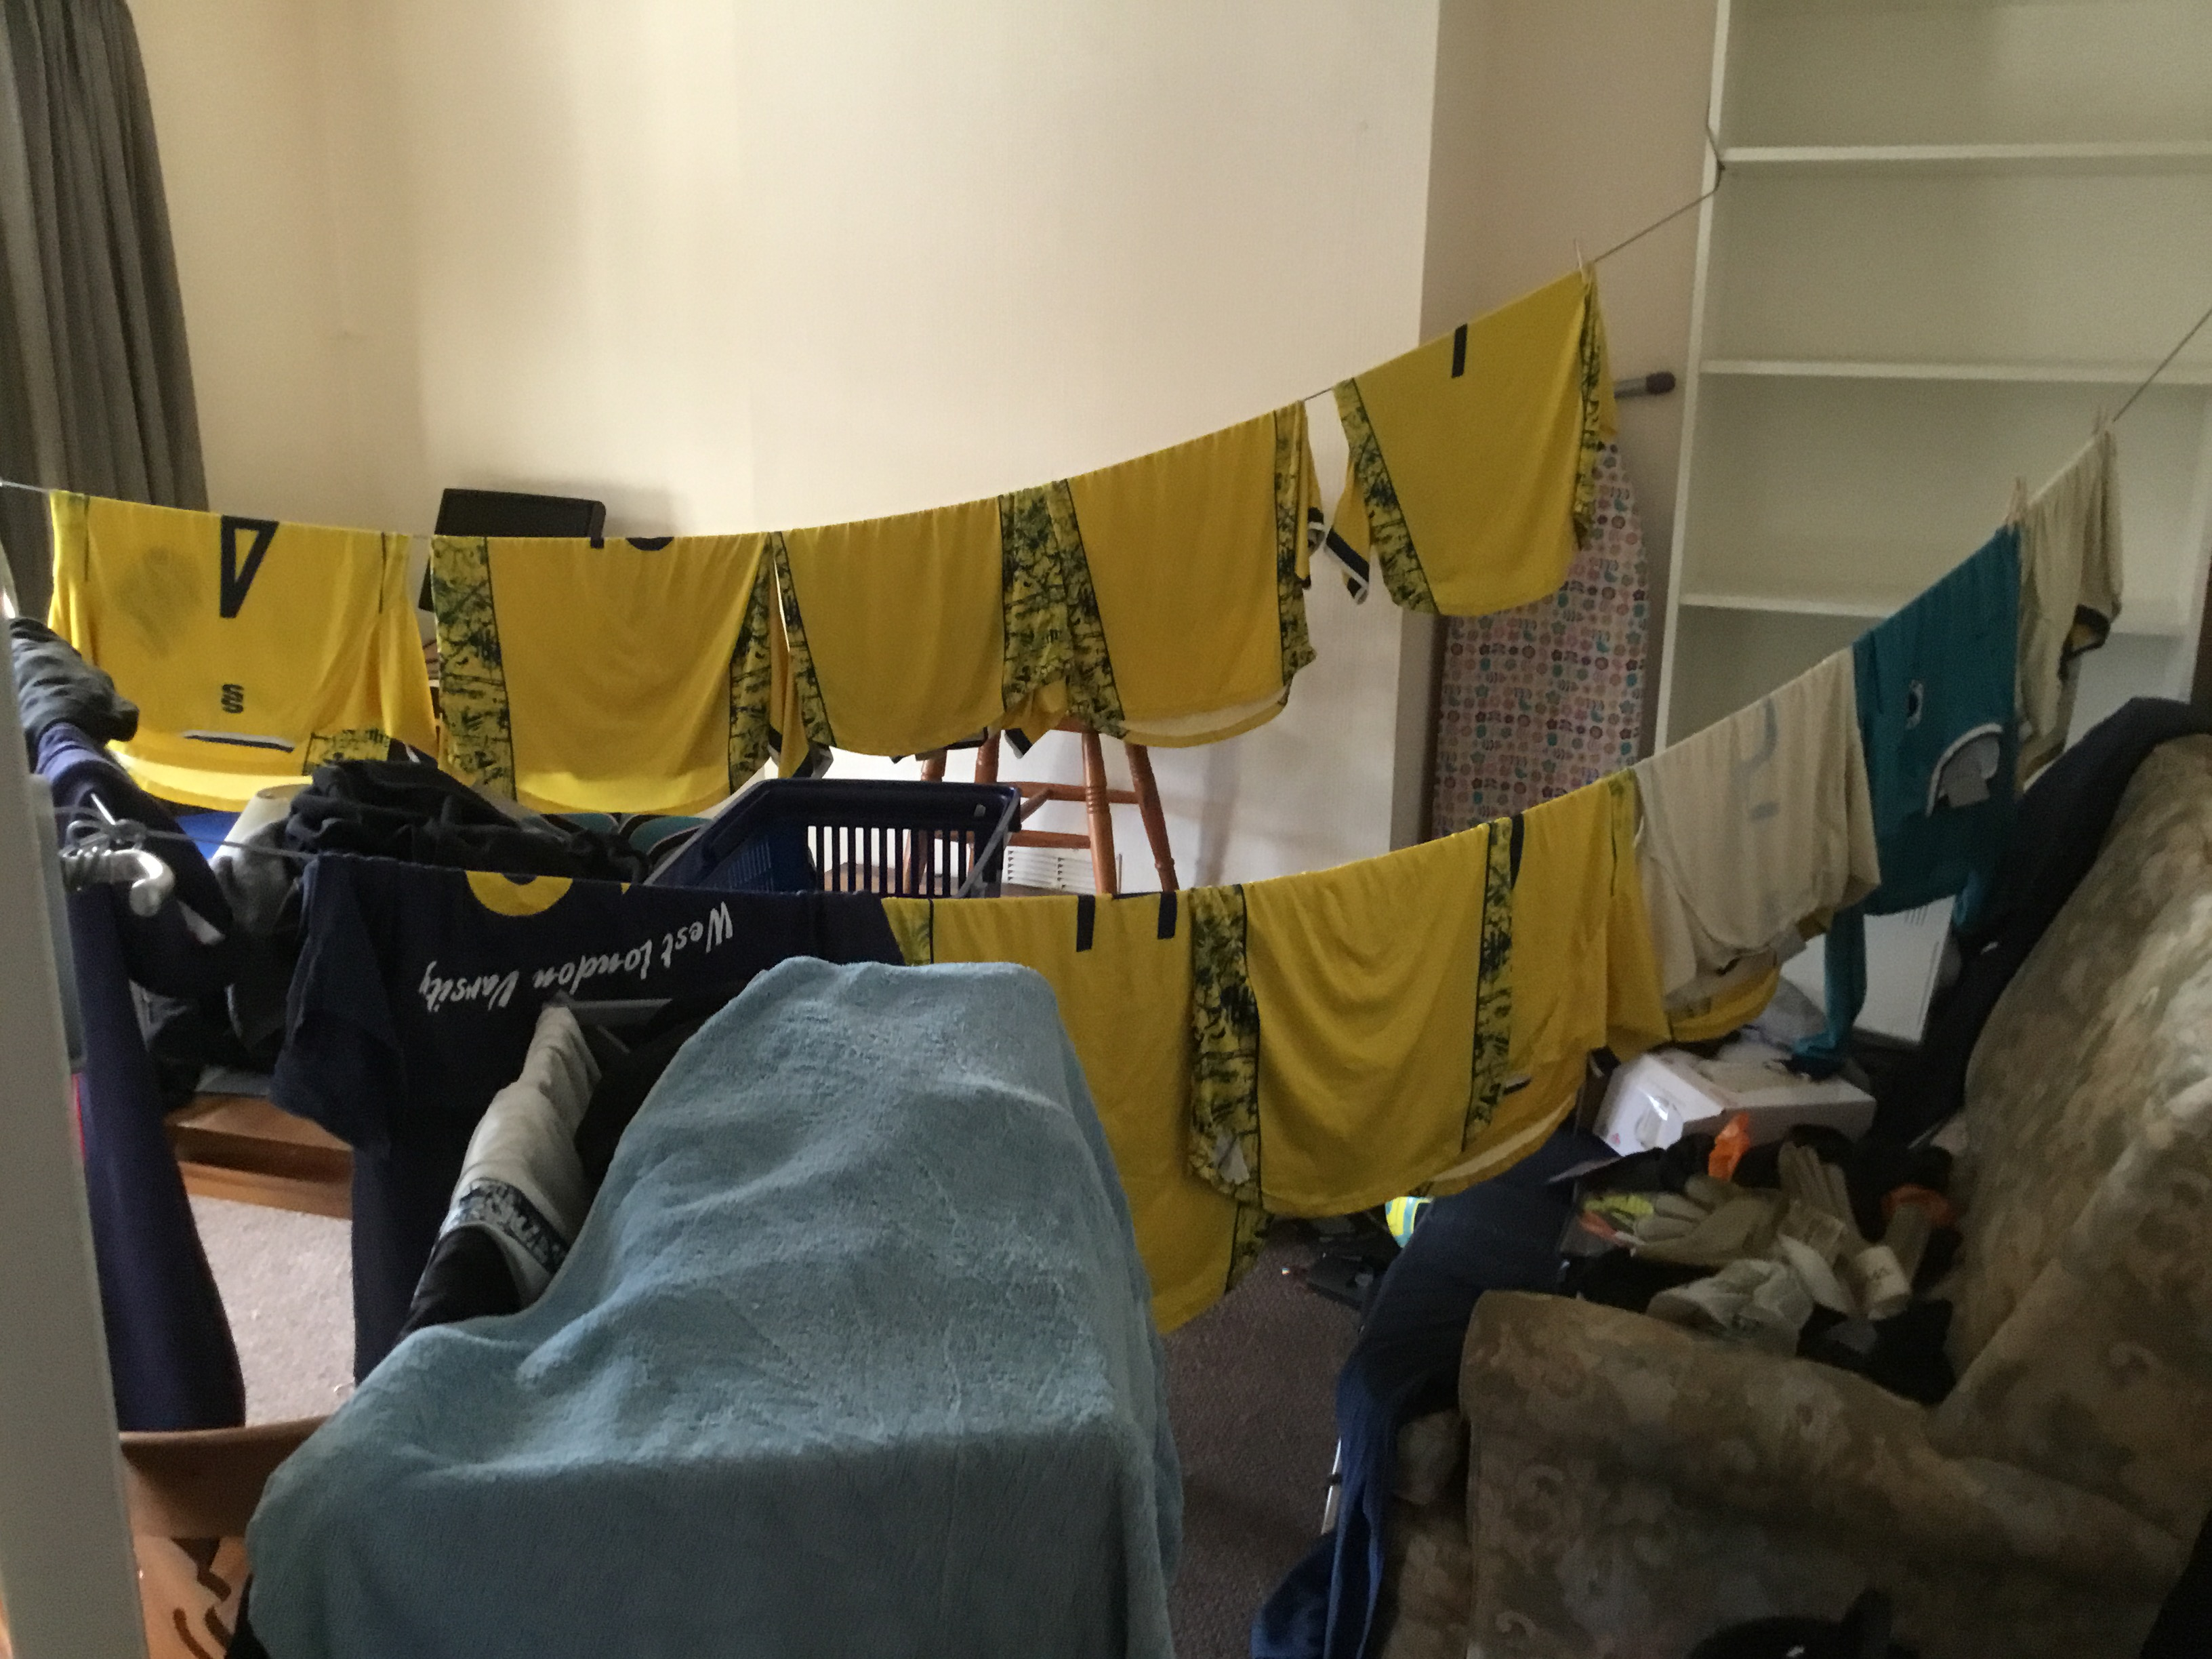 Clothes drying inside a flat causes condensation